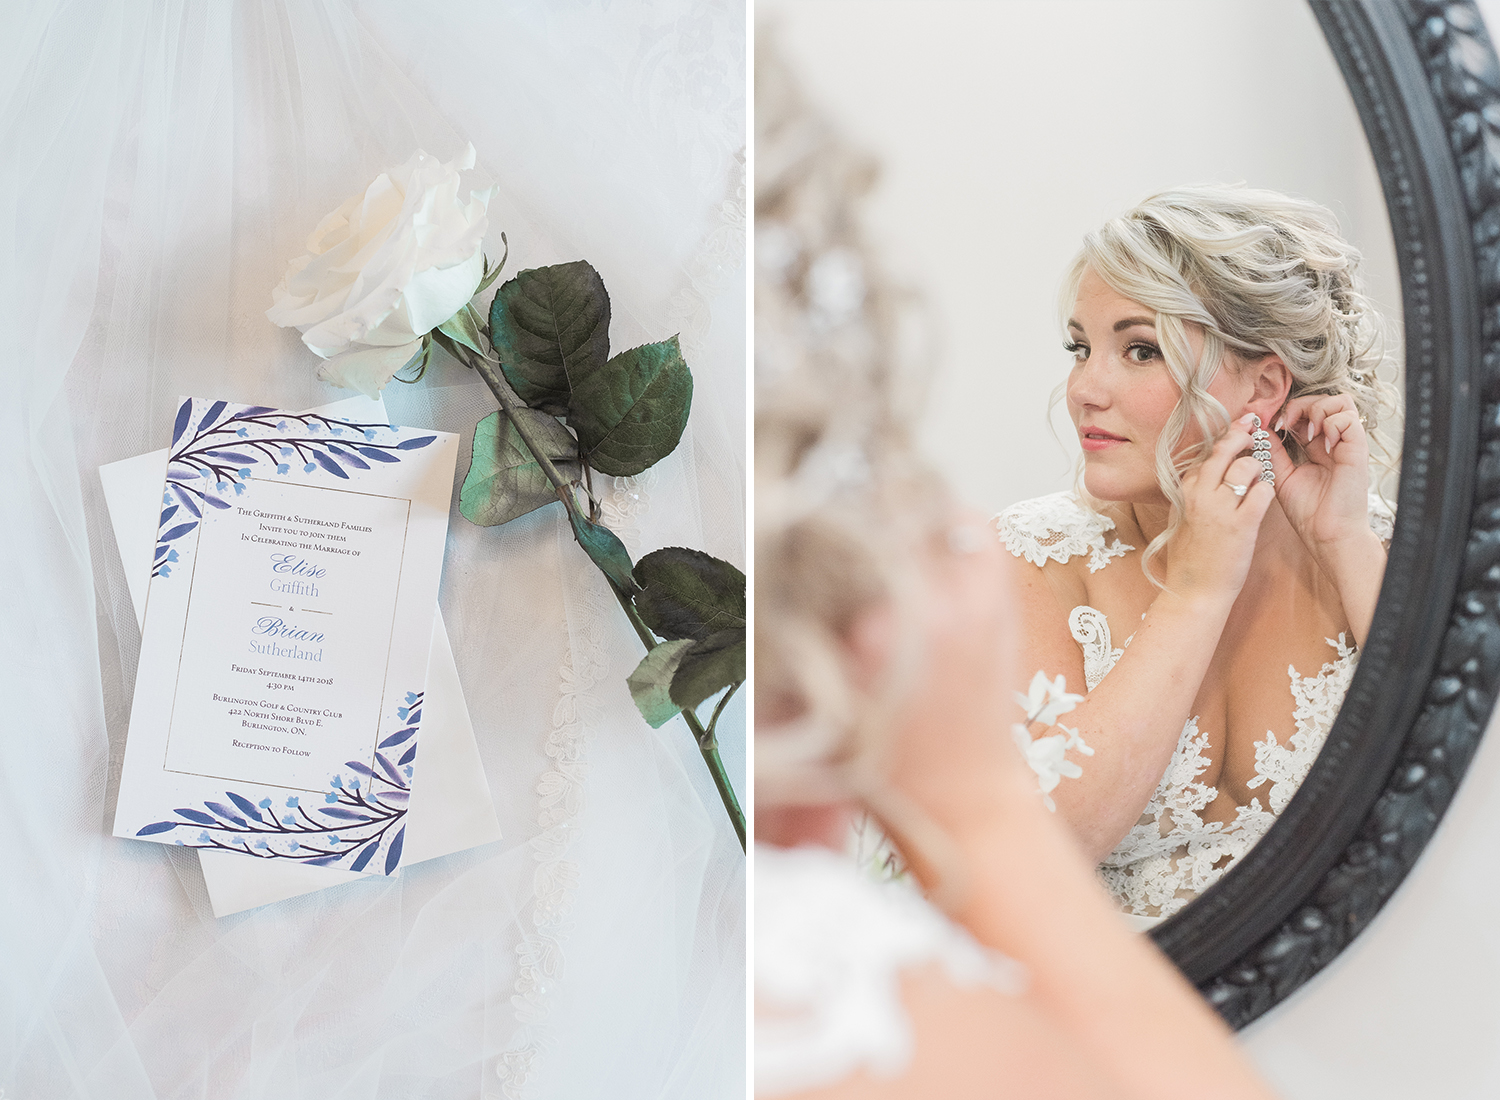 wedding invitation detail and bride putting on earrings in mirror